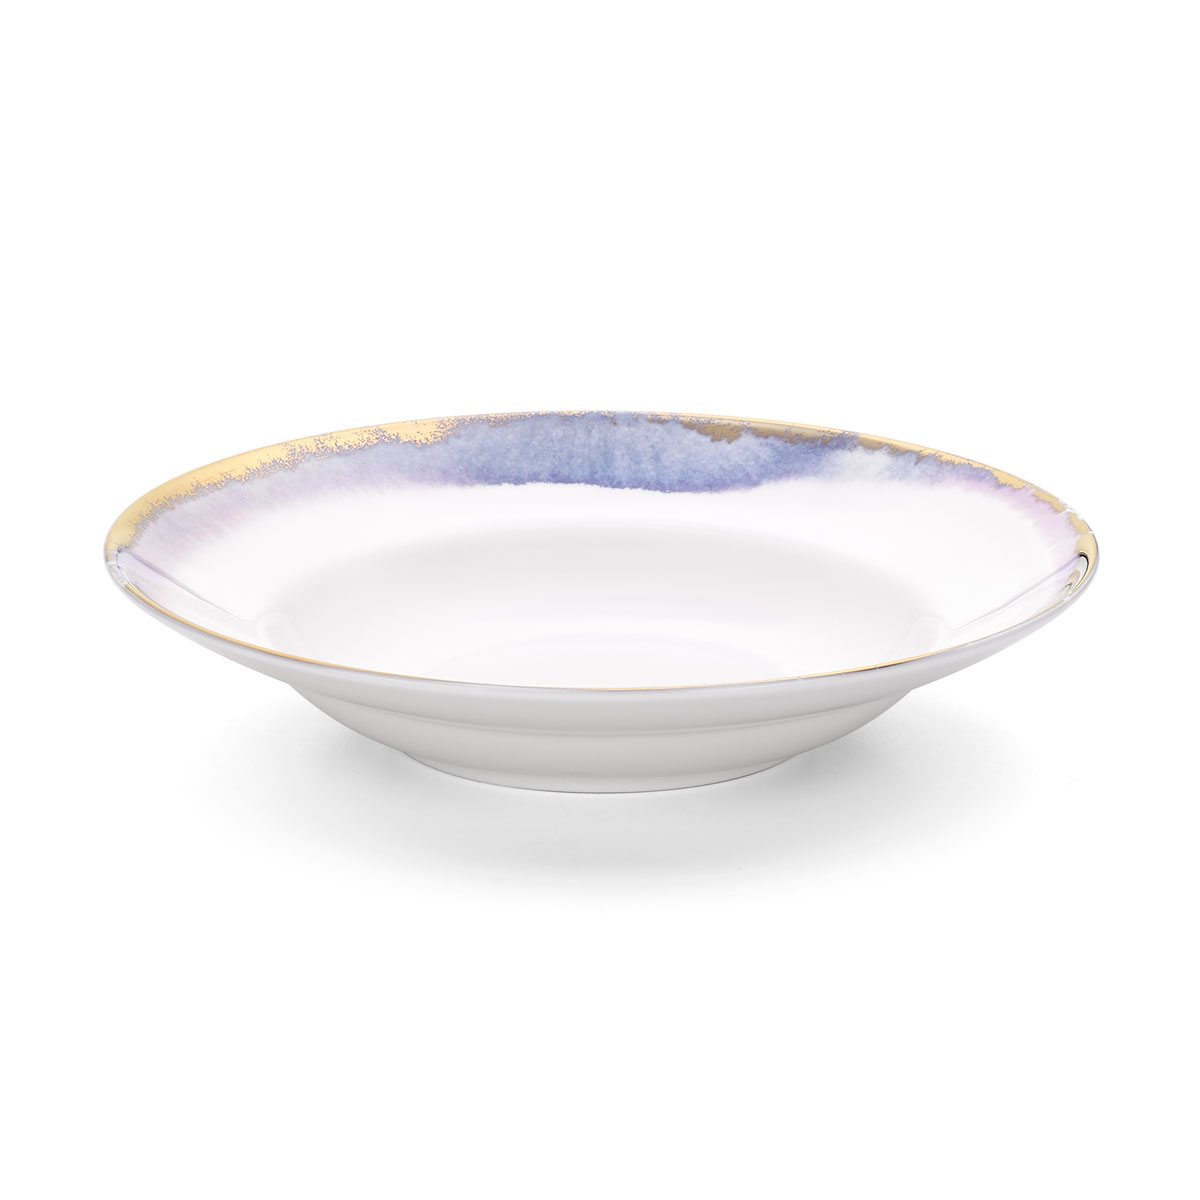 Lenox Winter Radiance Dinnerware Pasta Rim Soup